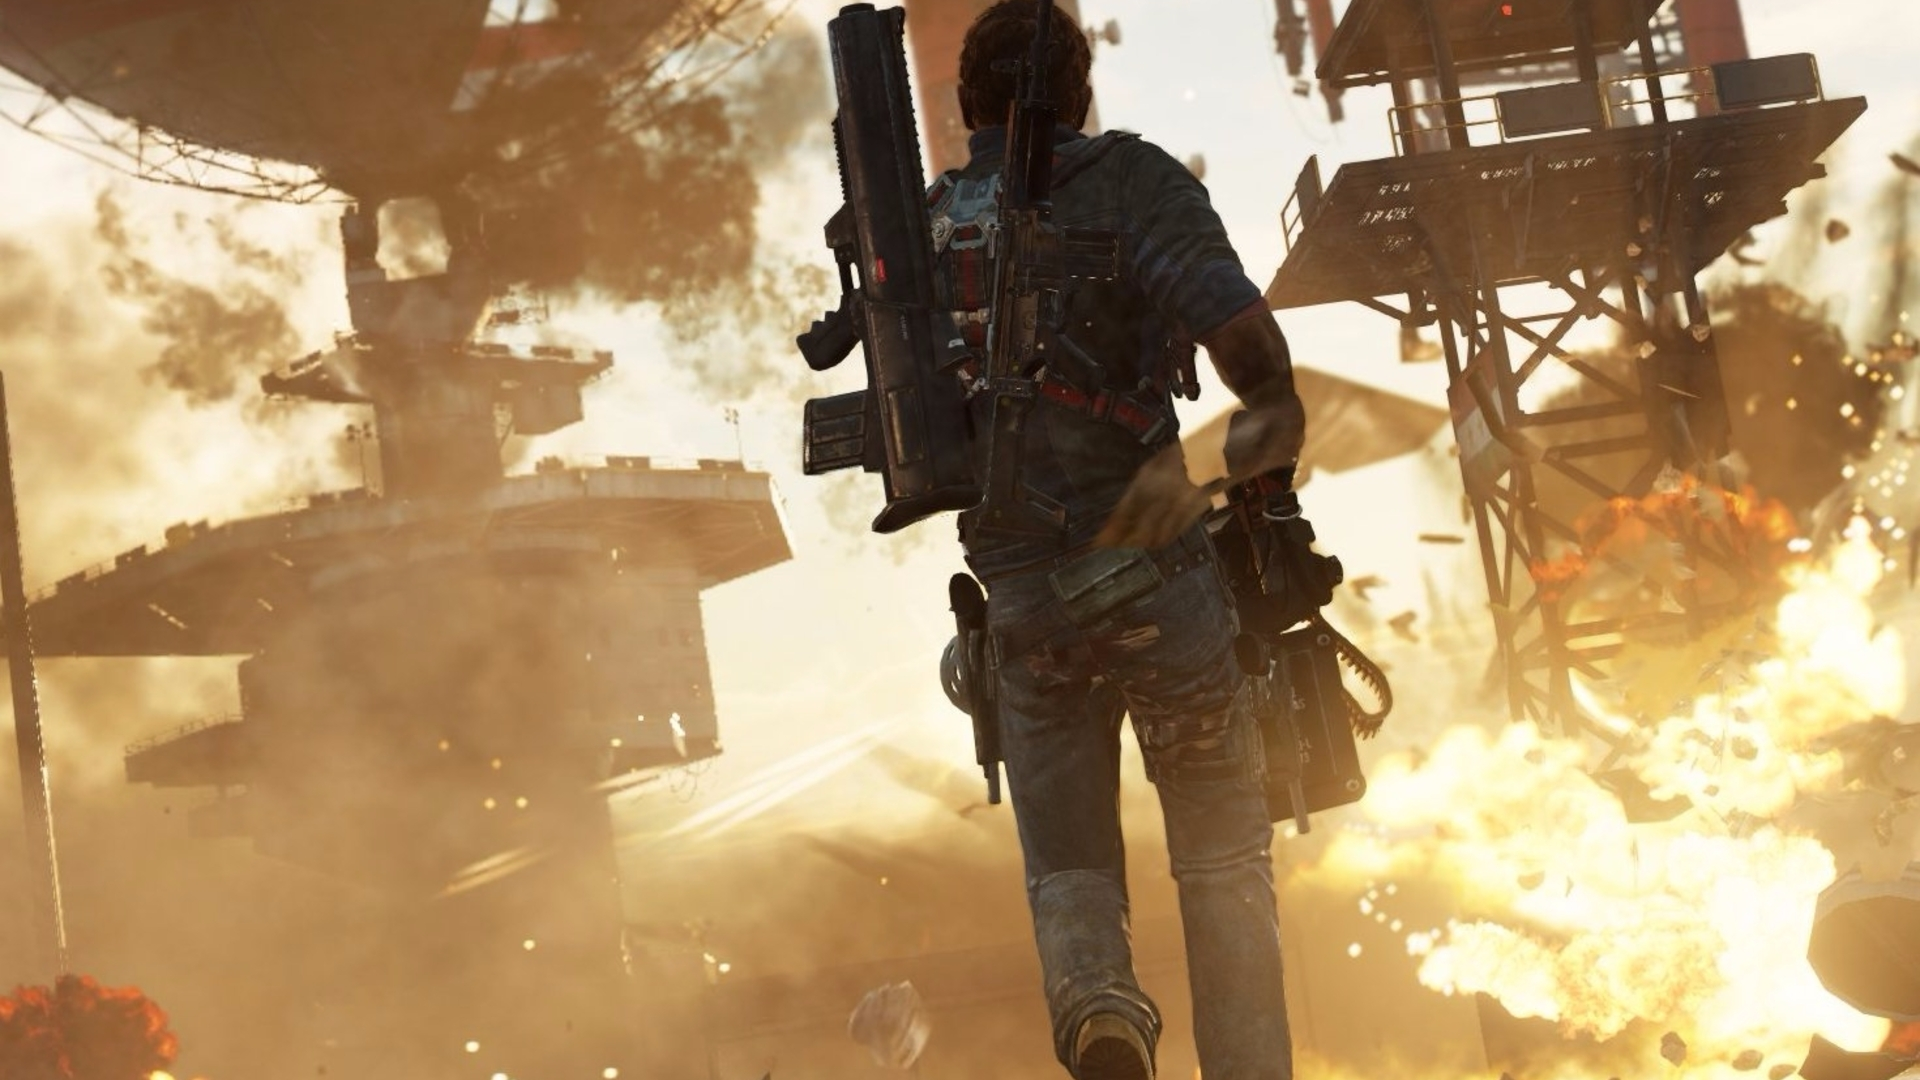 Watch: 'Liberating' a base in Just Cause 3